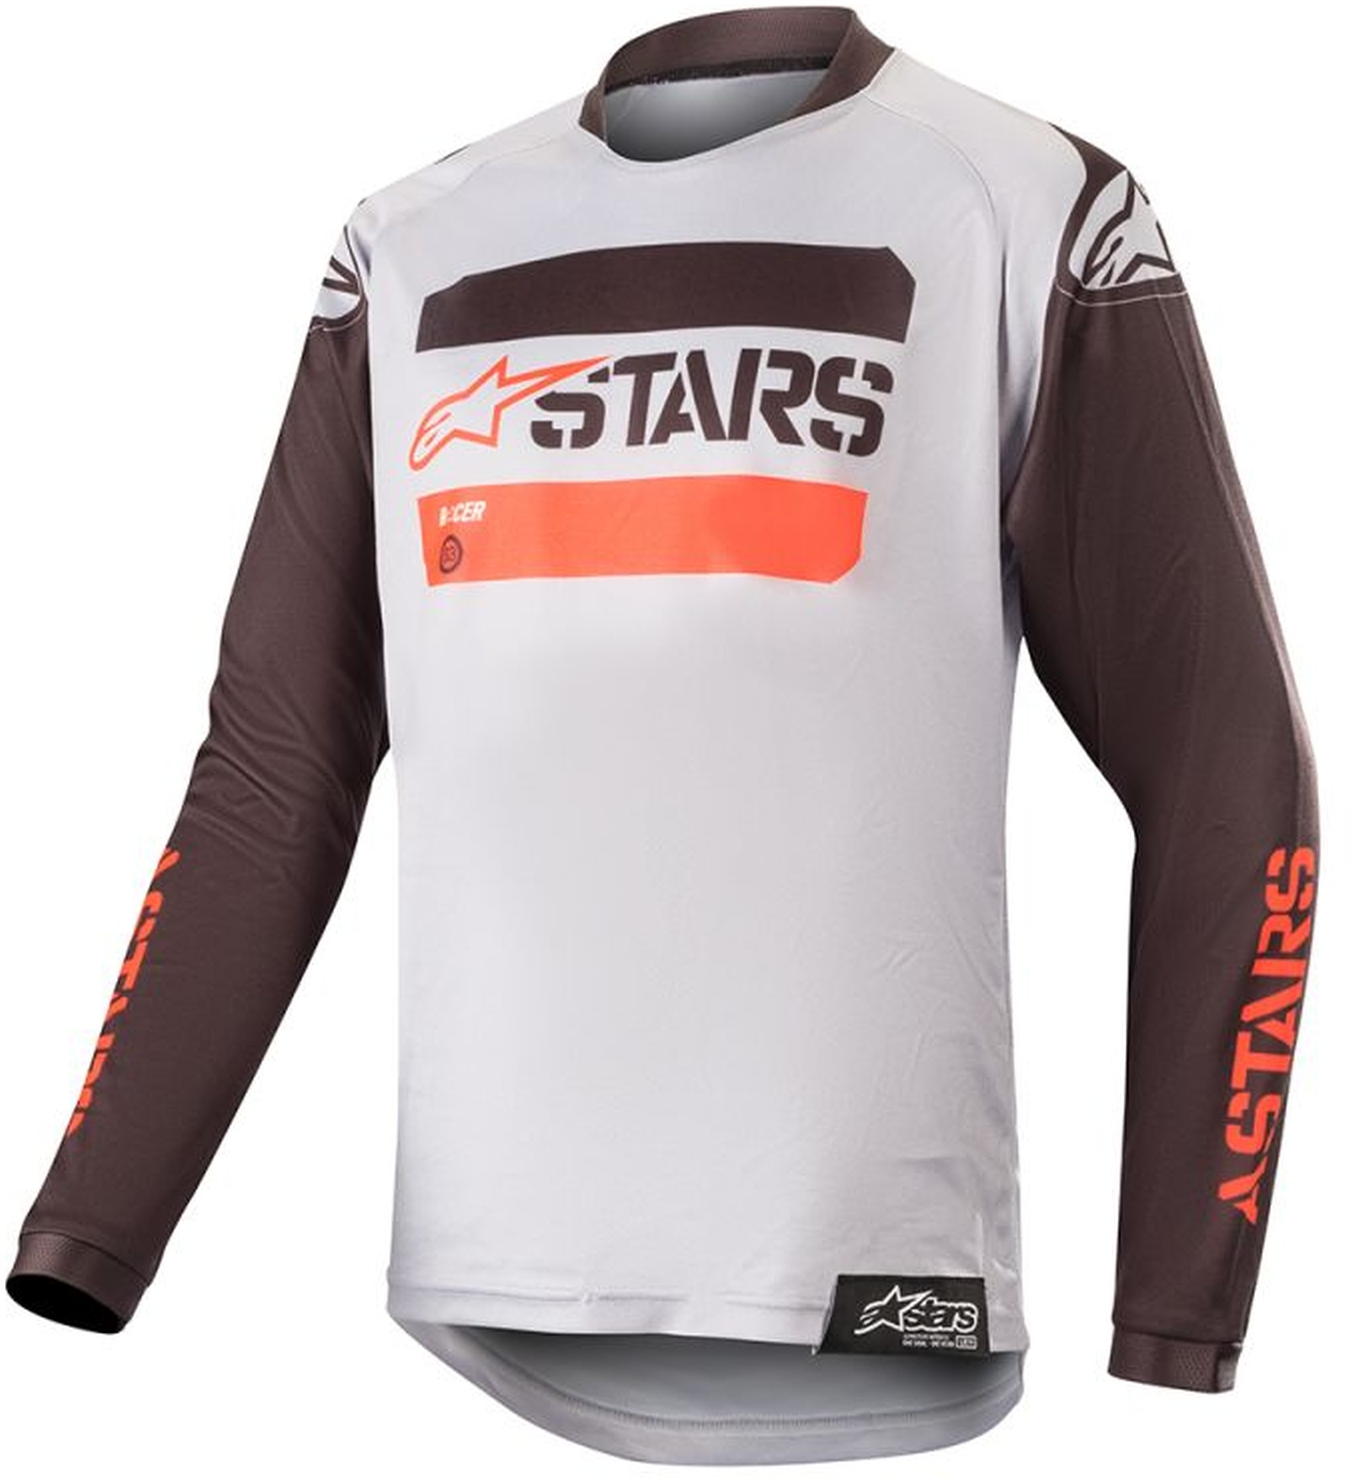 MAGLIA CROSS BAMBINO YOUTH RACER TACTICAL JERSEY